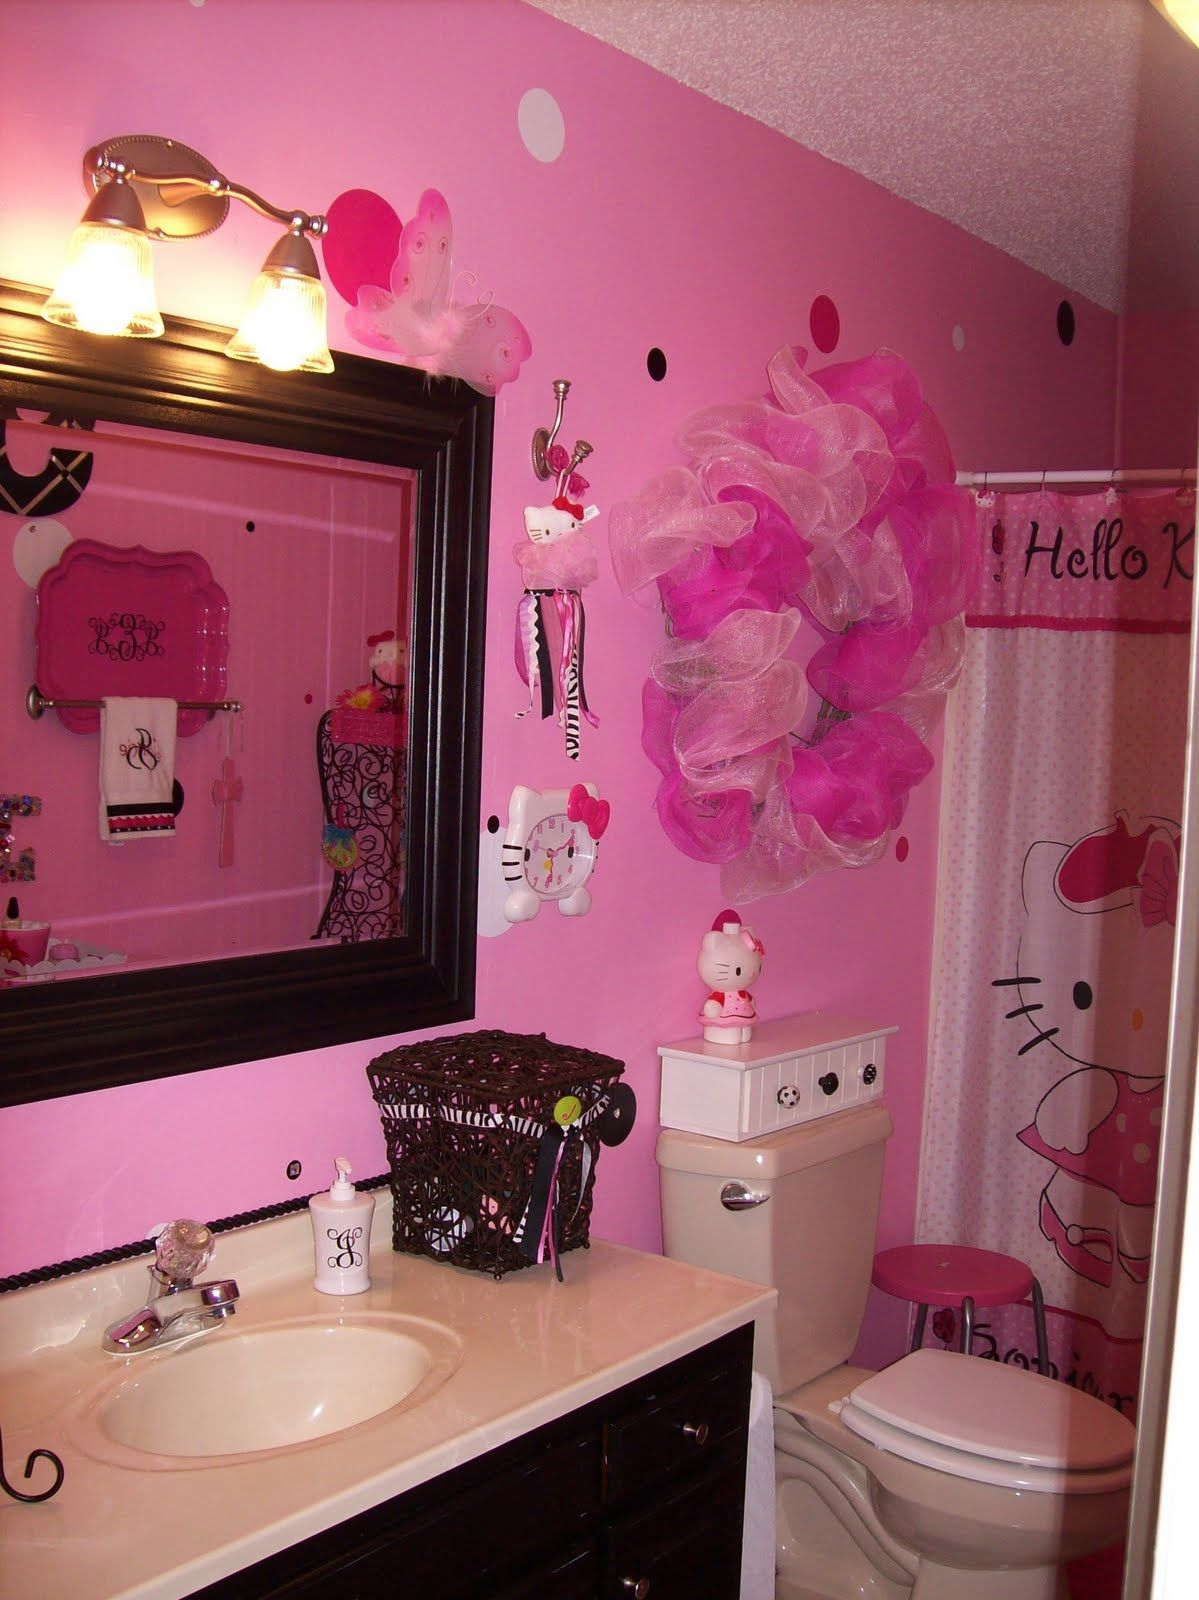 Hello Kitty Bathroom Set Cet The Whole Process Of Beautifying A Property Isn T Limited To Important Furnishings